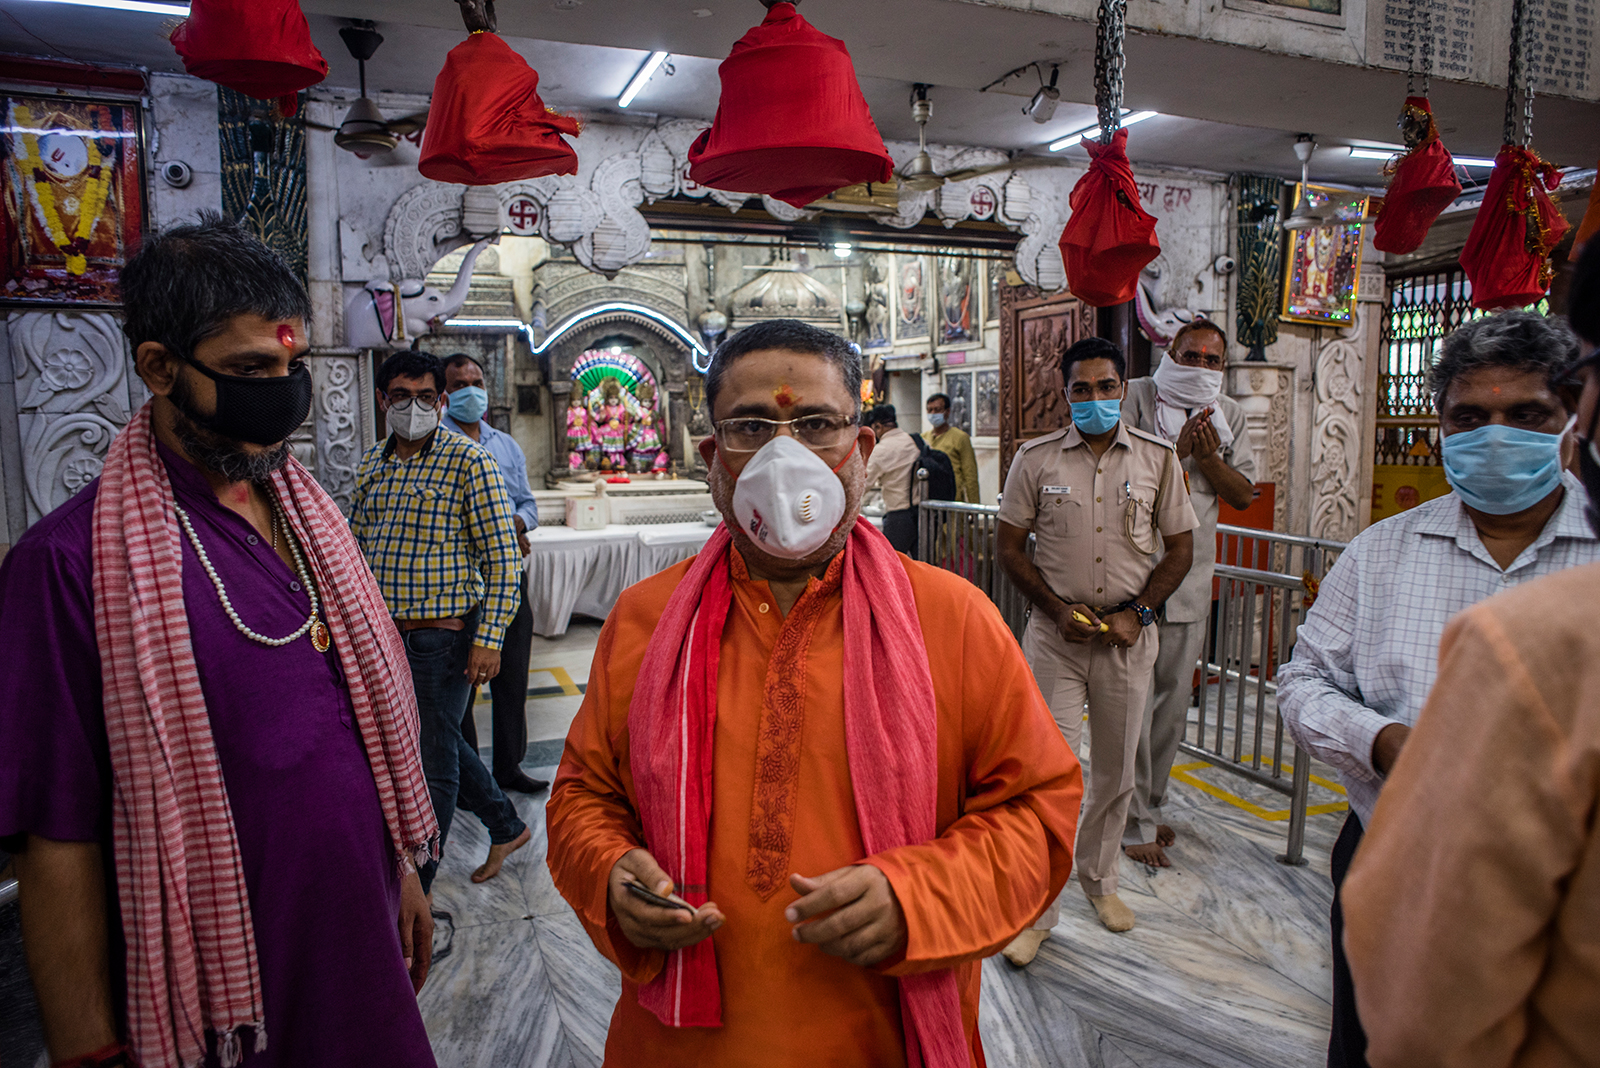 Indian Hindu priests and devotees walk inside Hunuman Mandir, on June 8, in Delhi.